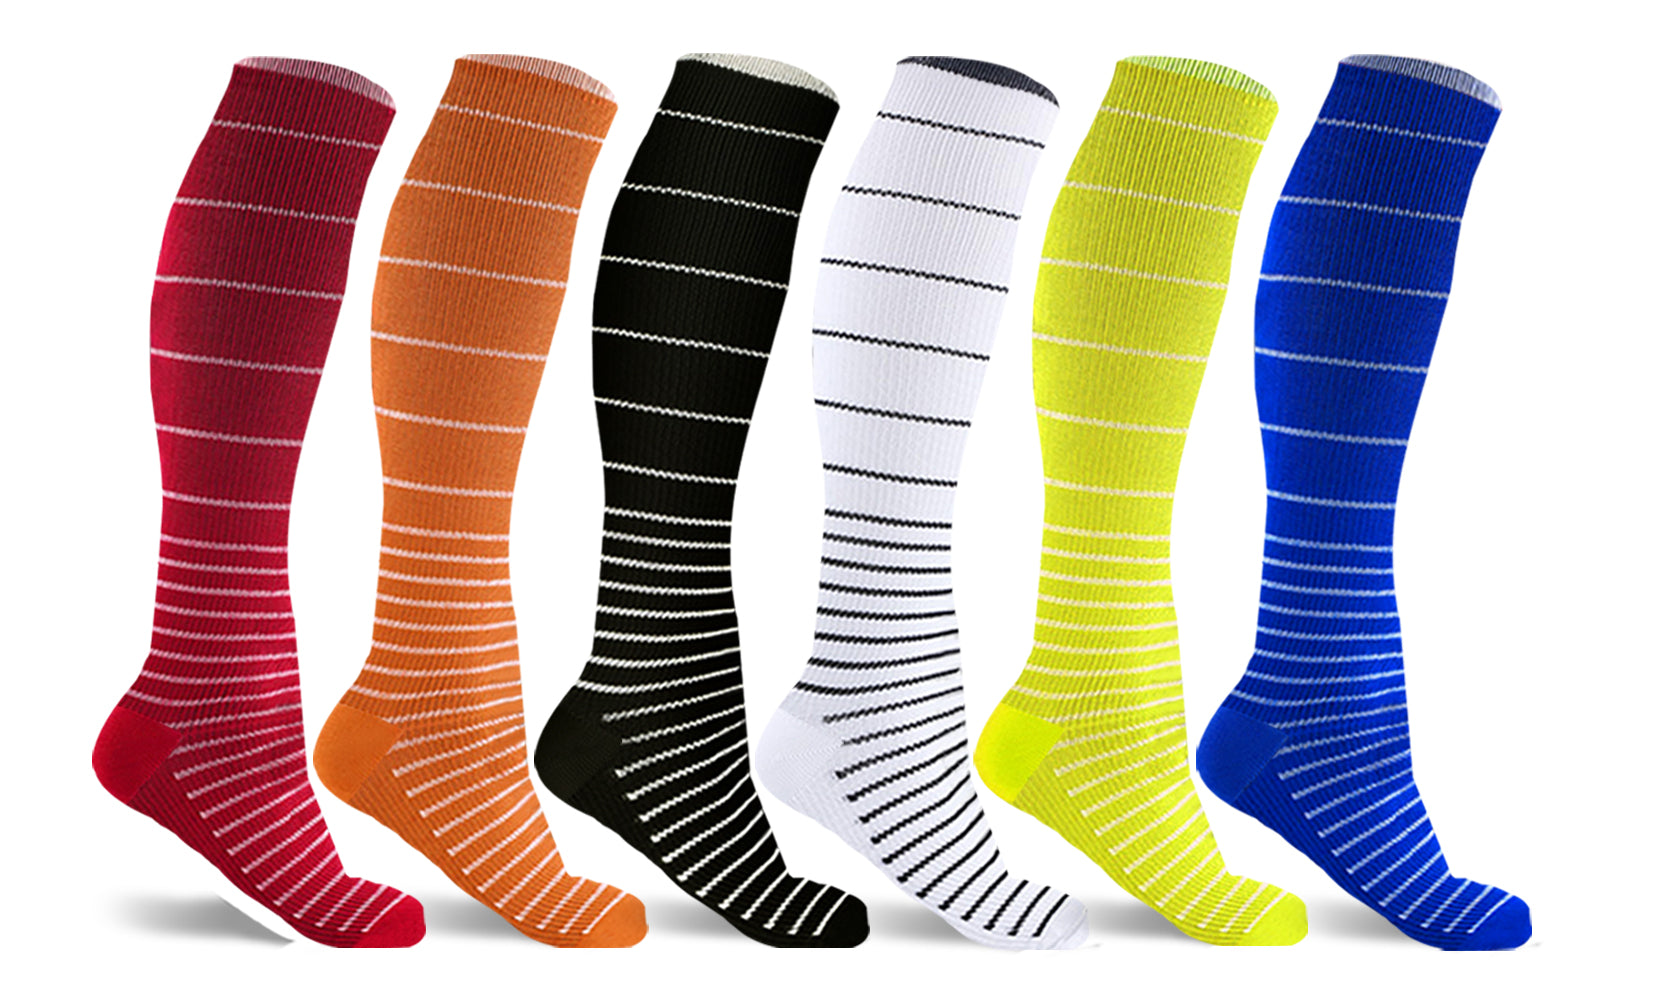 6-Pairs : Unisex Stress Relief Compression Socks